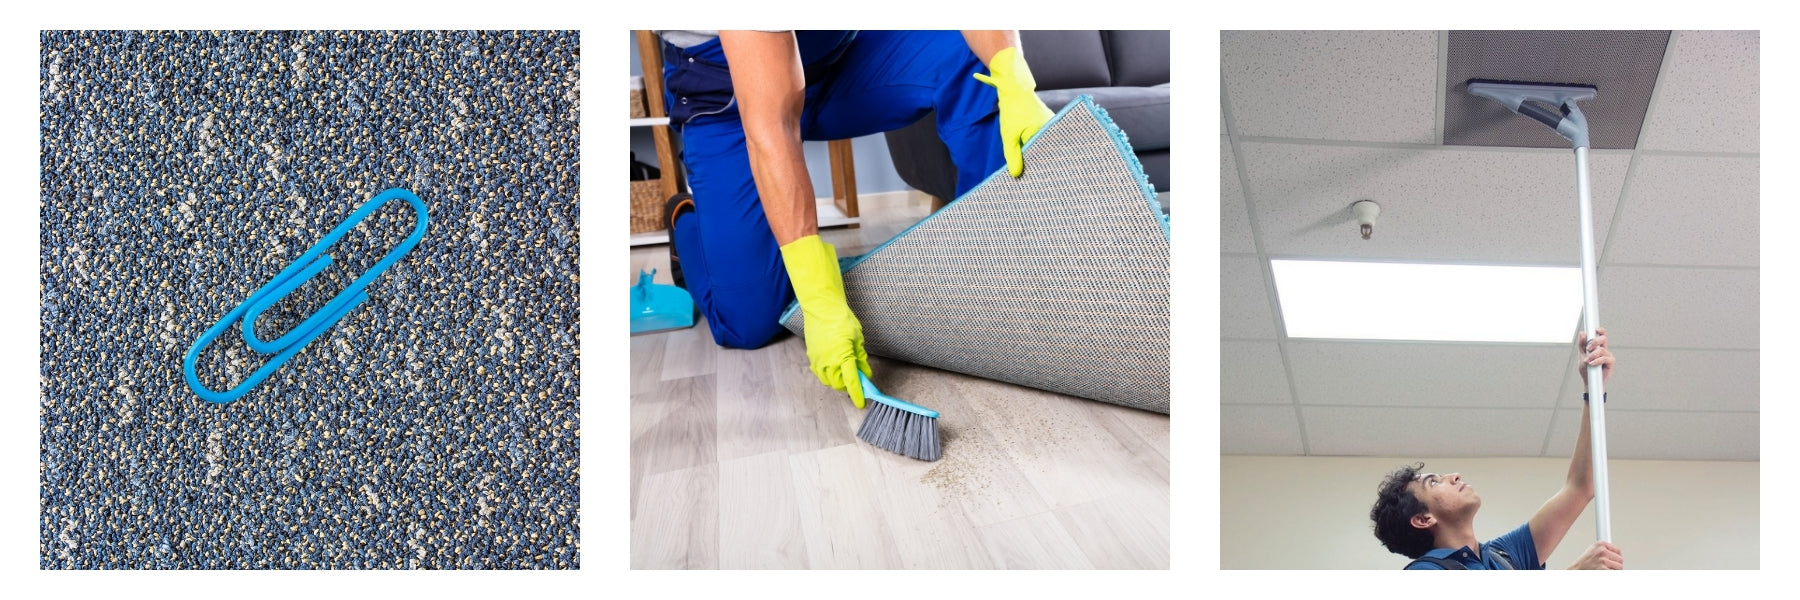 Jan-Supply demonstrates best practices for commercial vacuuming.